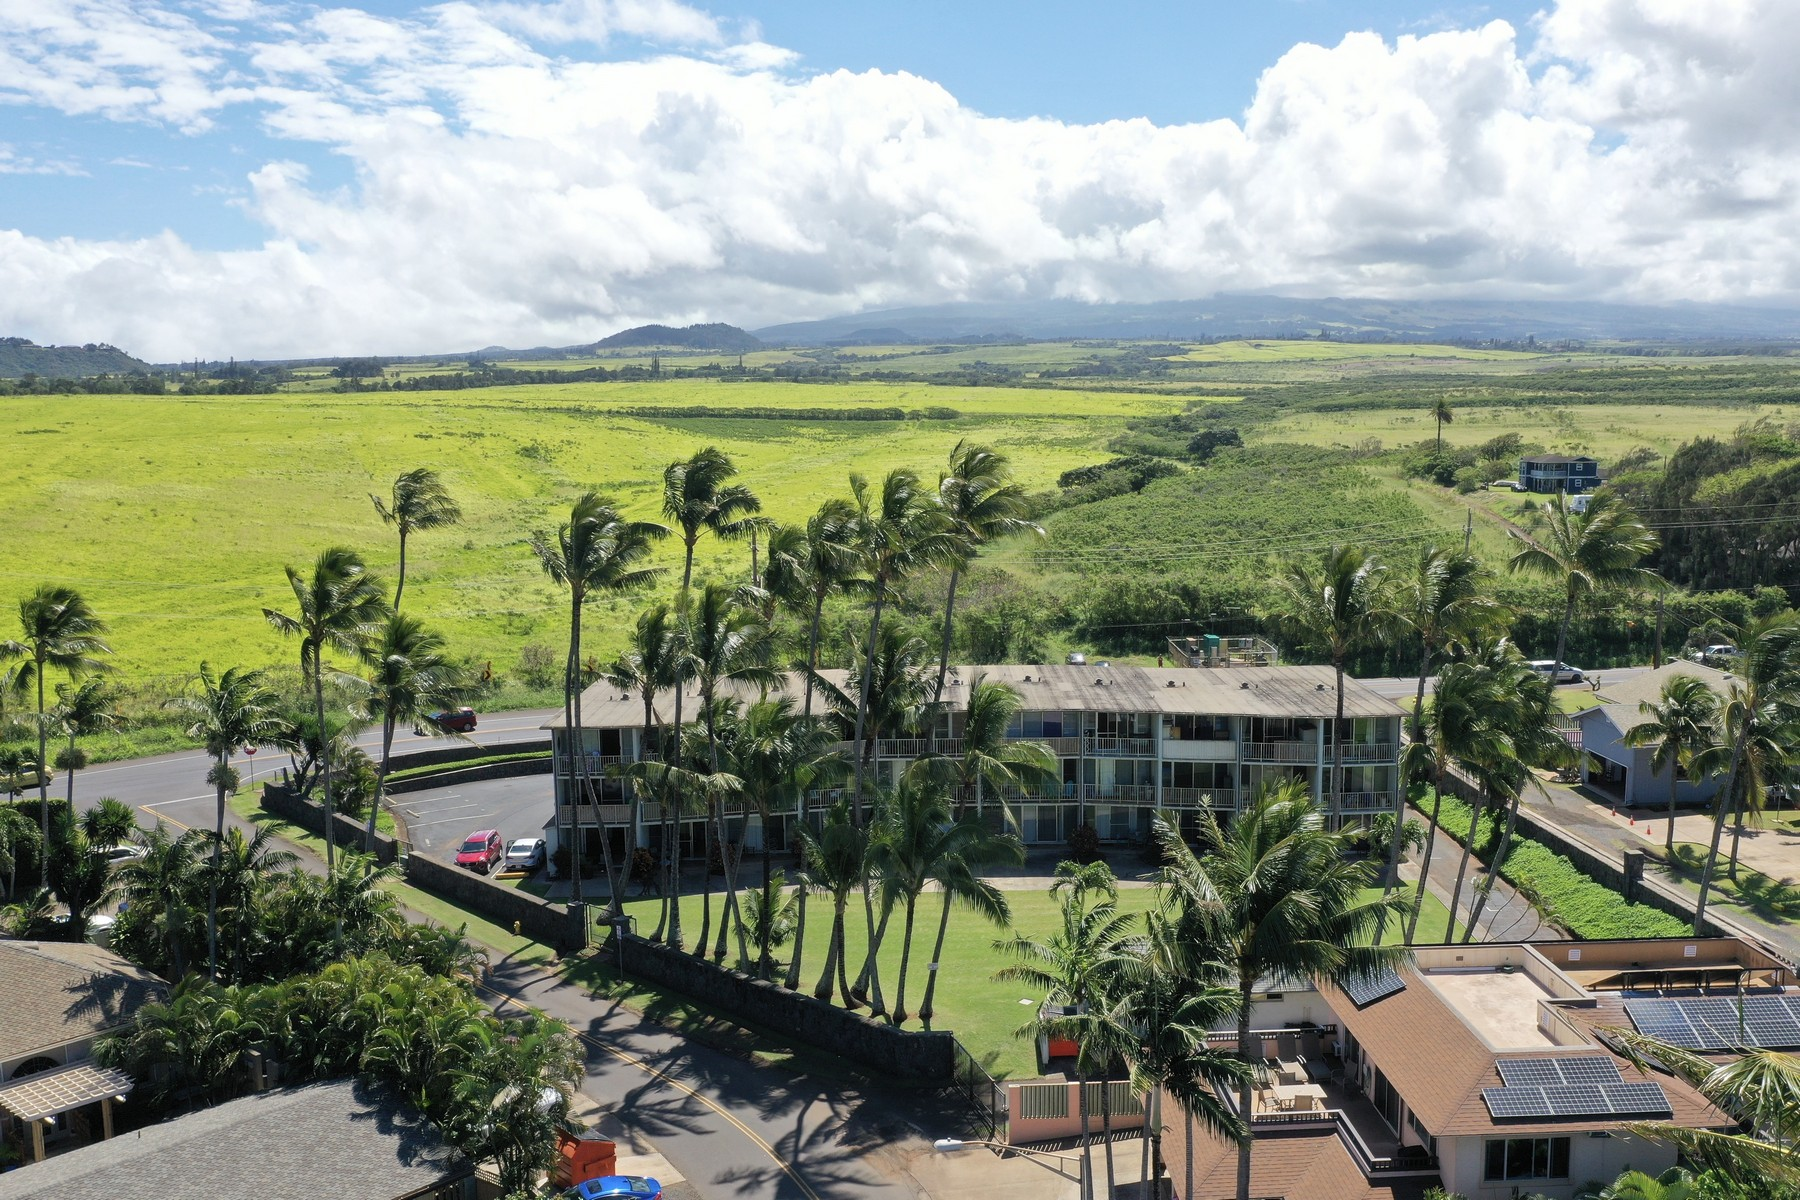 Condominiums for Sale at Grab Your Suit (Swimsuit) and Come To A Favorite Place 777 Hana Highway, Kuau Plaza #210 Paia, Hawaii 96779 United States